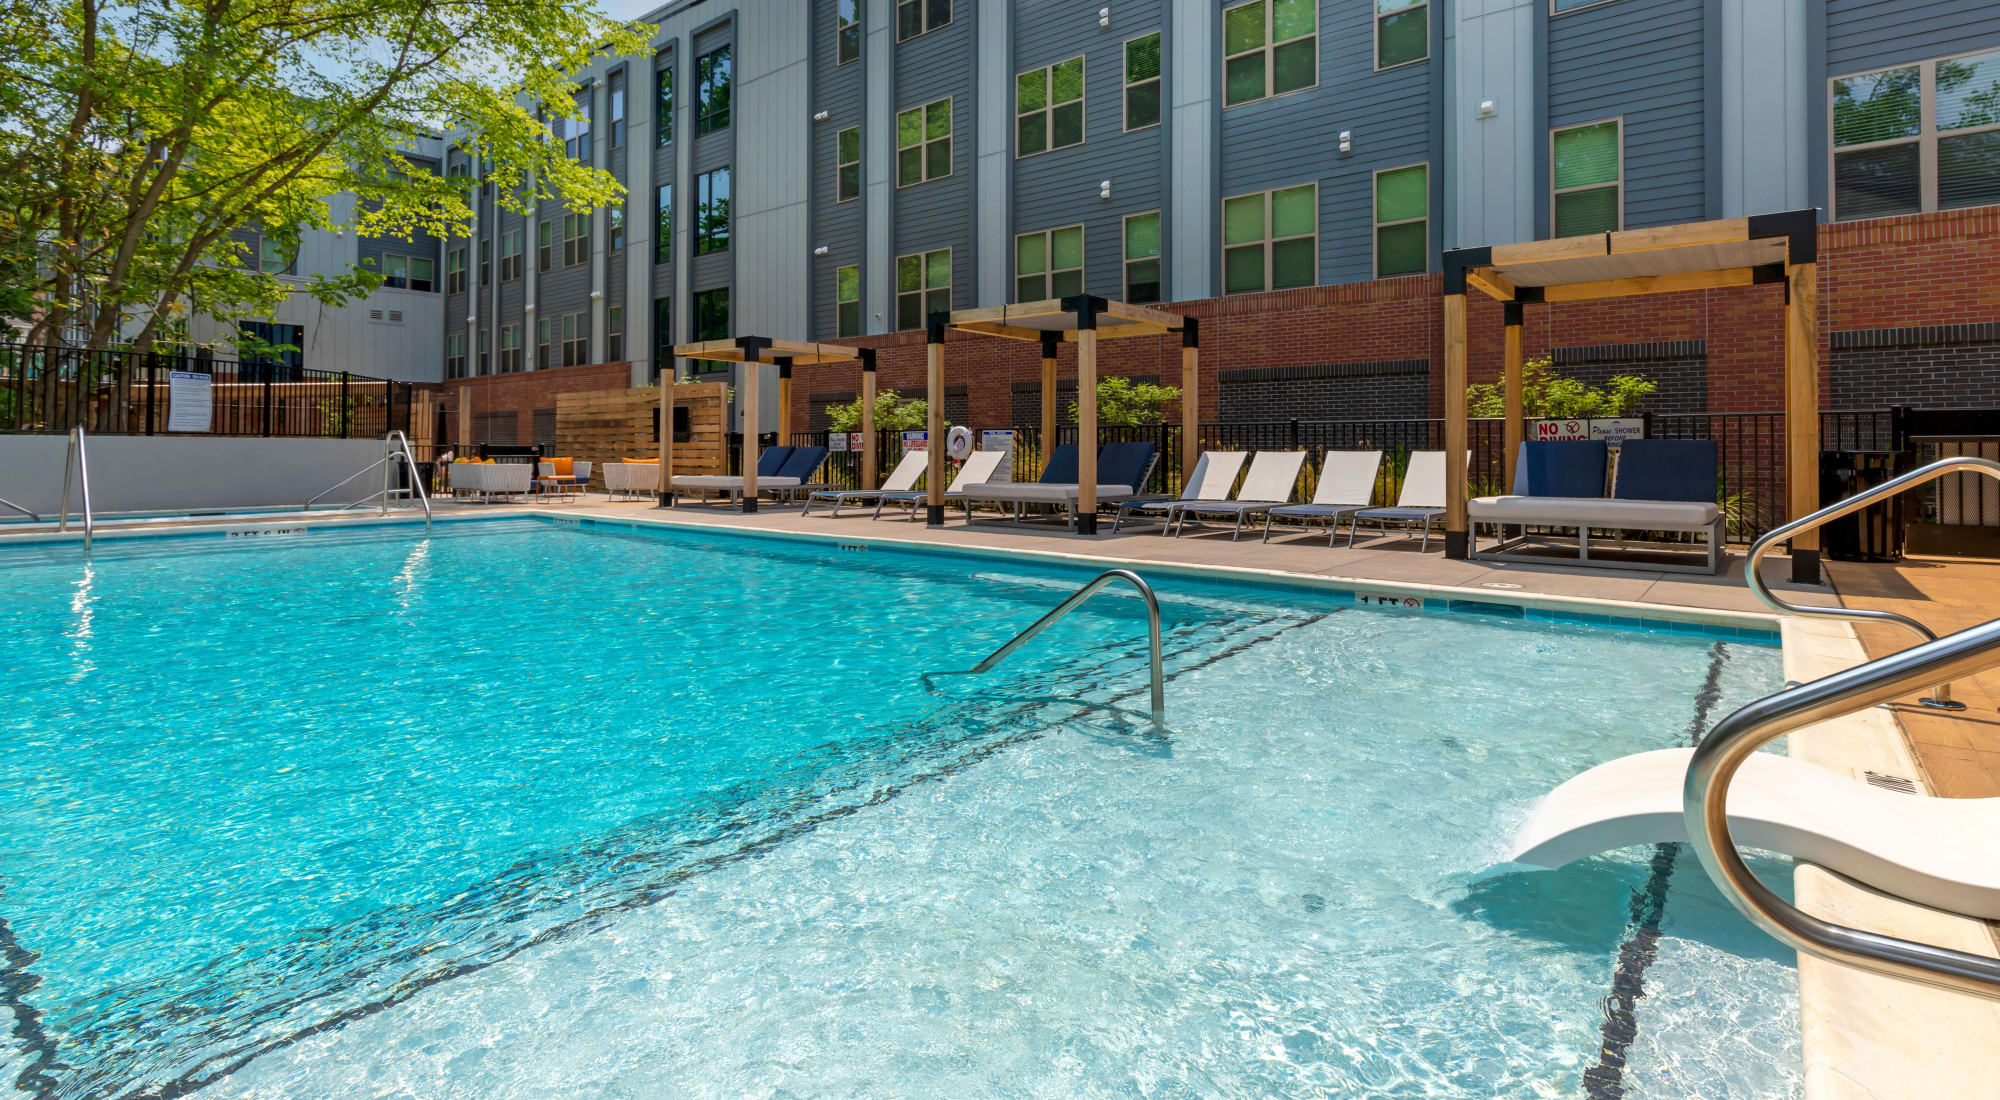 Apartments at UNCOMMON Raleigh in Raleigh, North Carolina